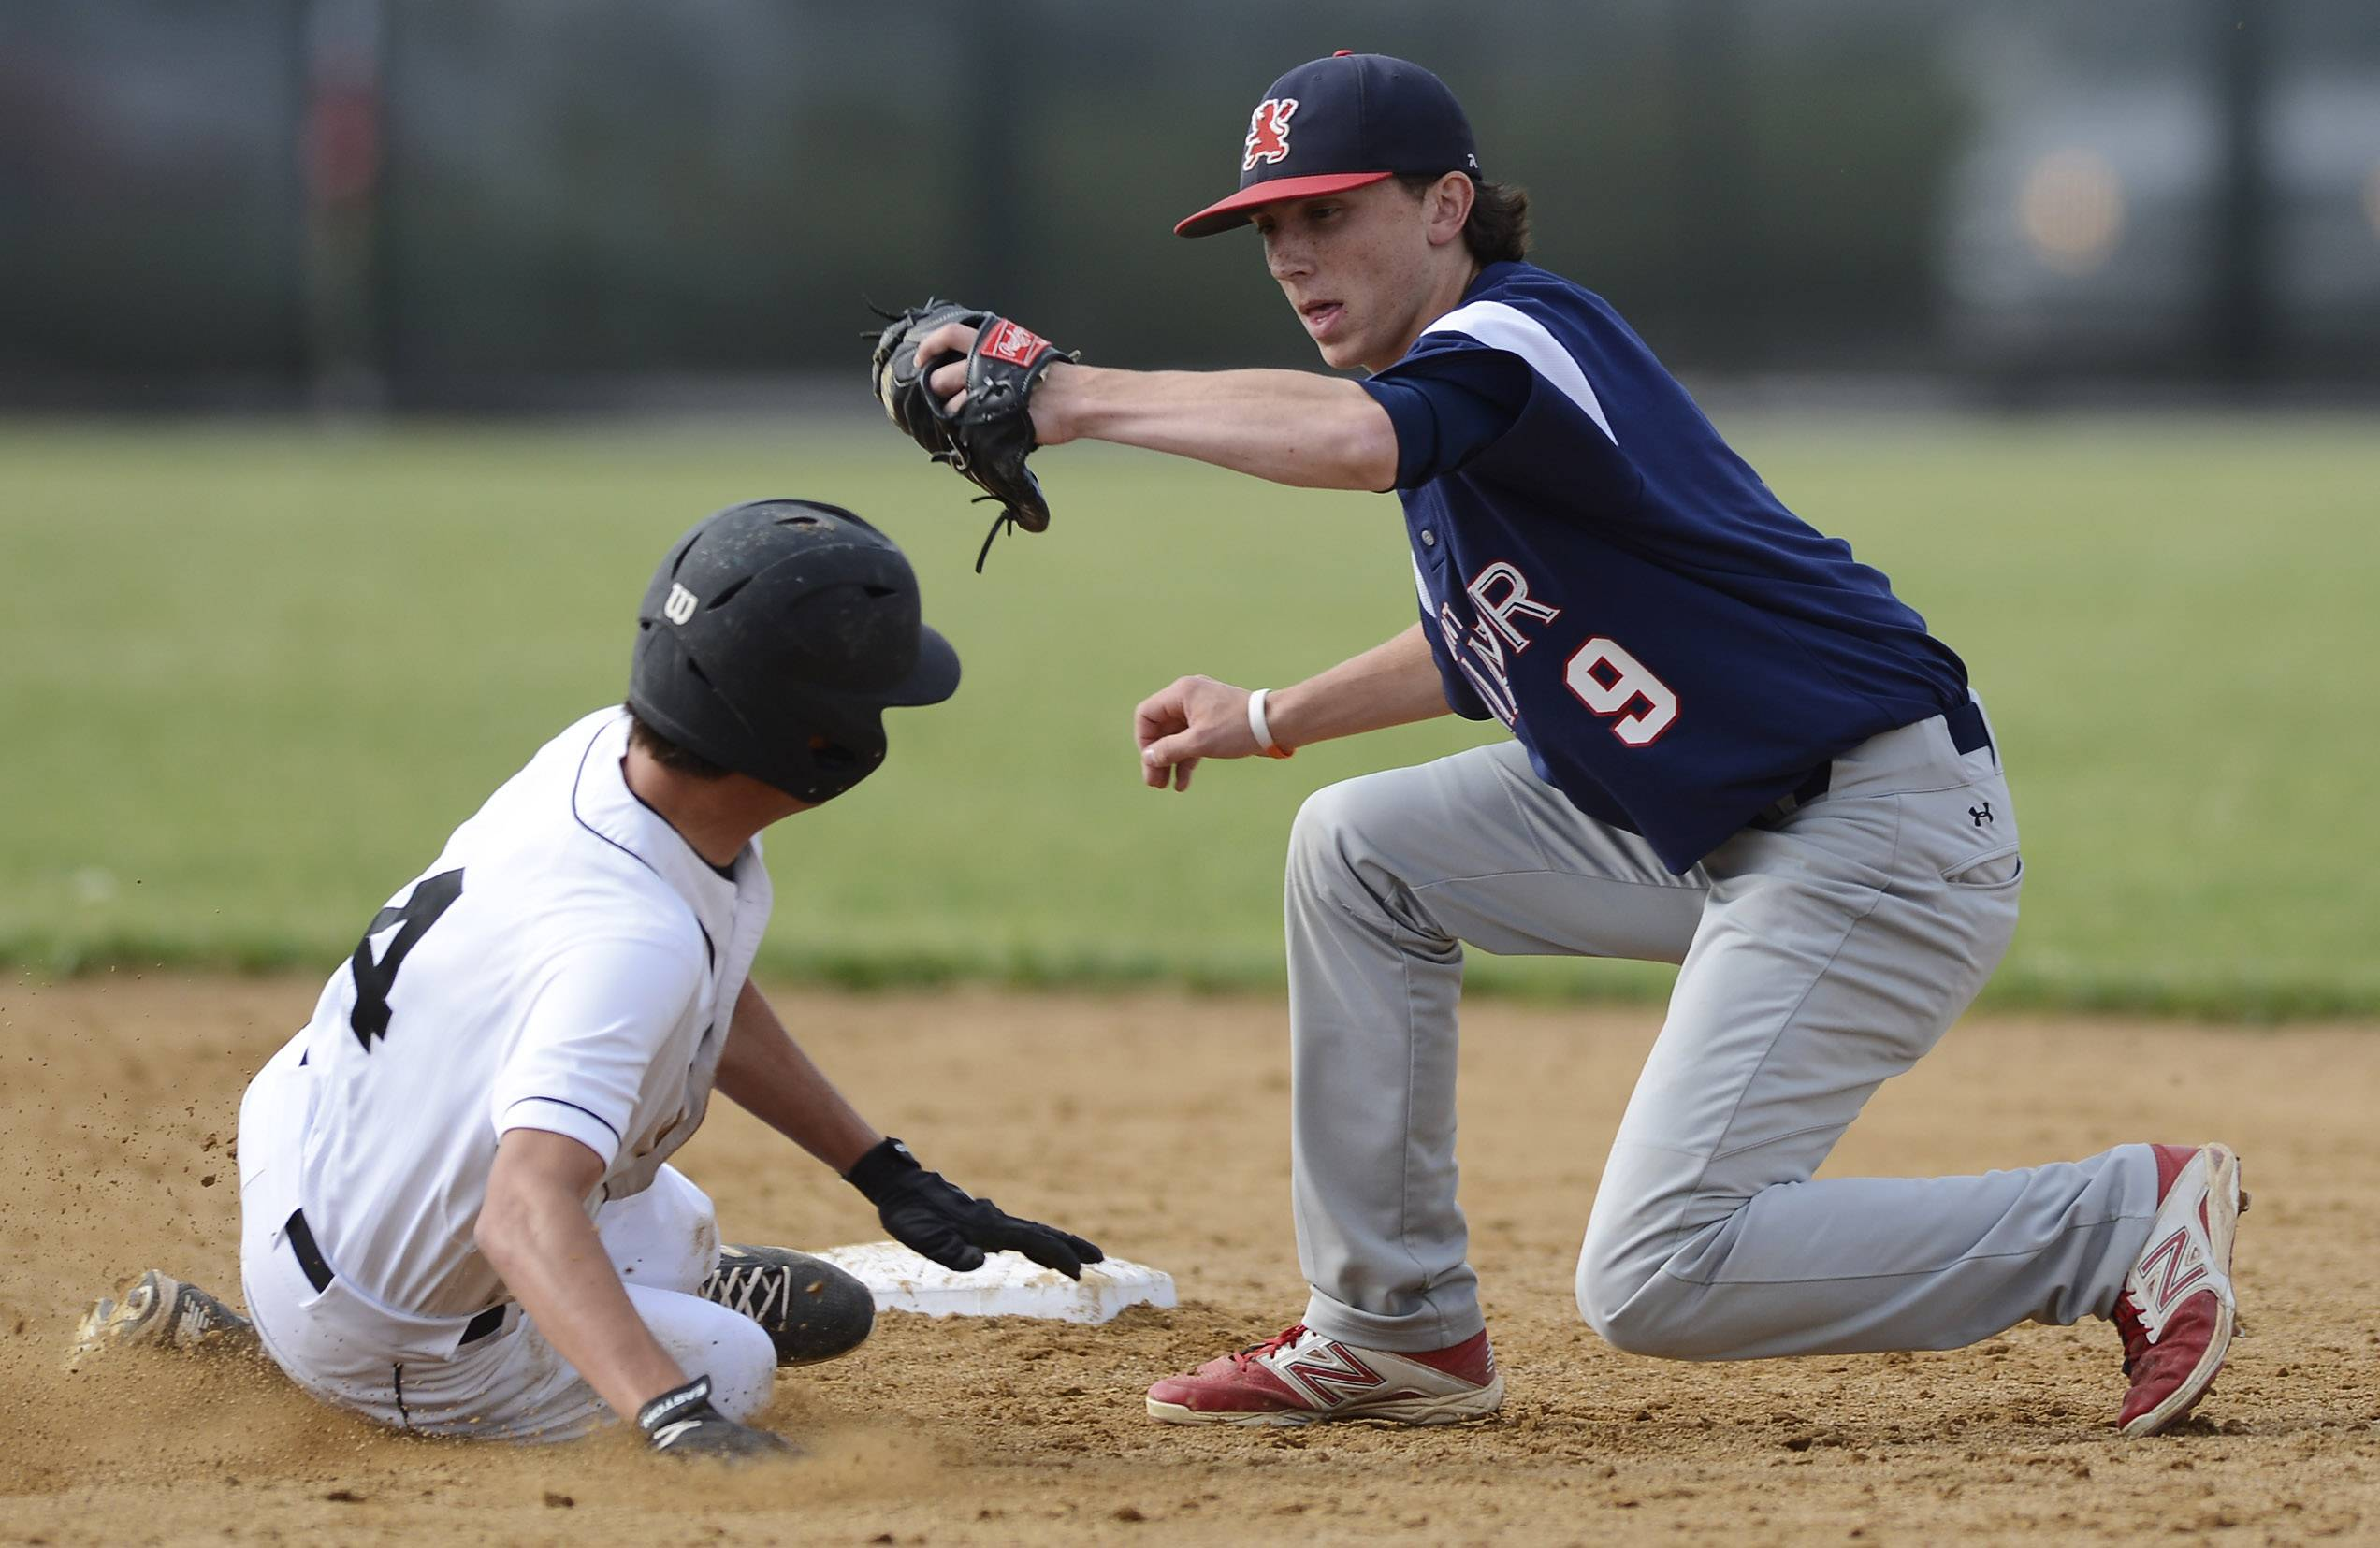 Libertyville's Matt Reed steals second base as St. Viator second baseman Matt Darling tries to grab a throw that bounced into the outfield during Class 4A baseball sectional semifinal play at Glenbrook South on Wednesday. Reed did not advance past second on the play.